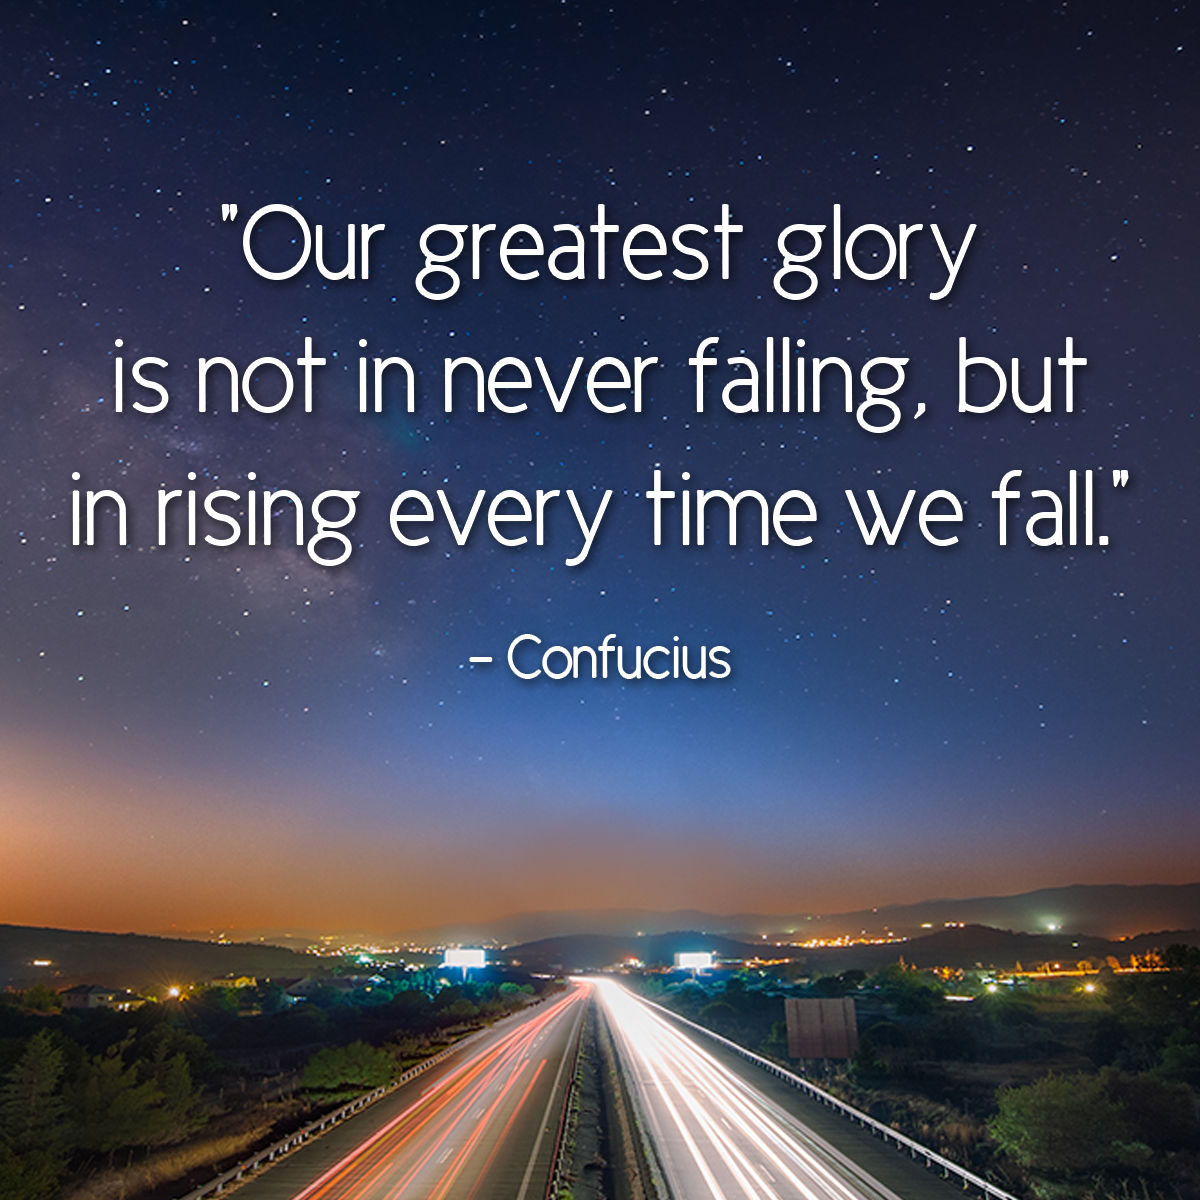 Inspirarional Quotes: Our Greatest Glory Is Not In Never Falling, But In Rising